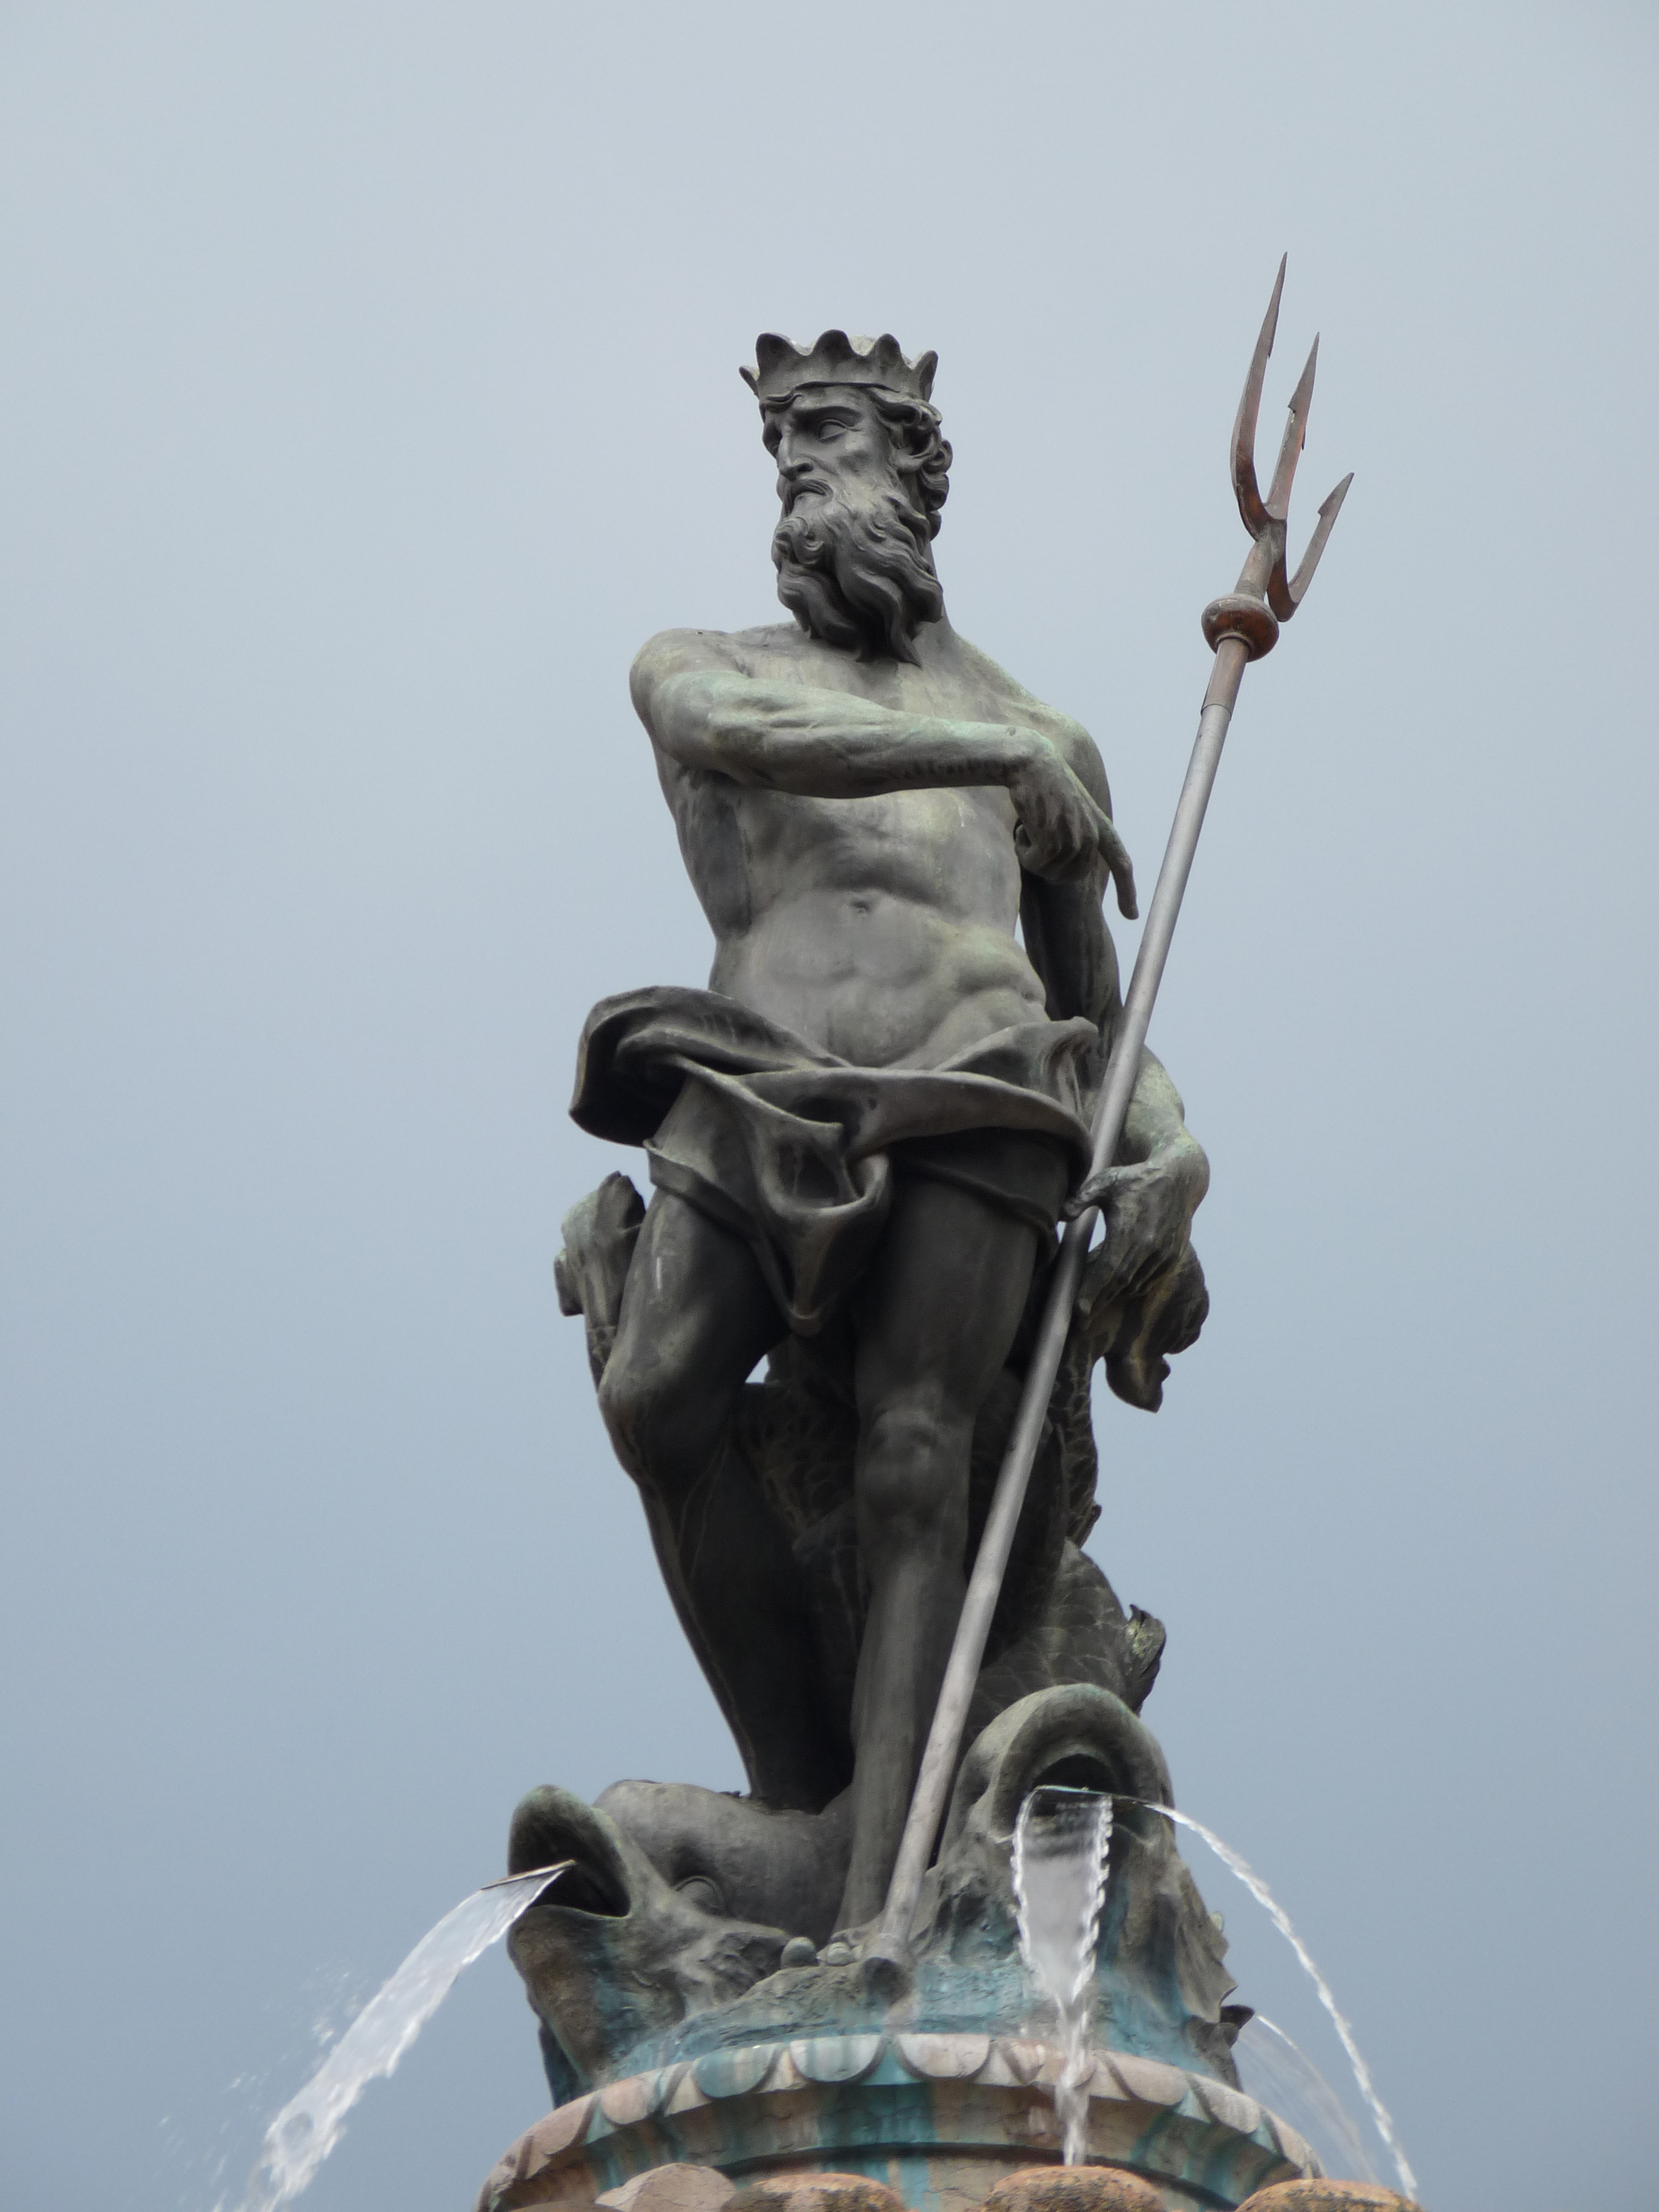 1000 images about sculpture on pinterest - Poseidon statue greece ...